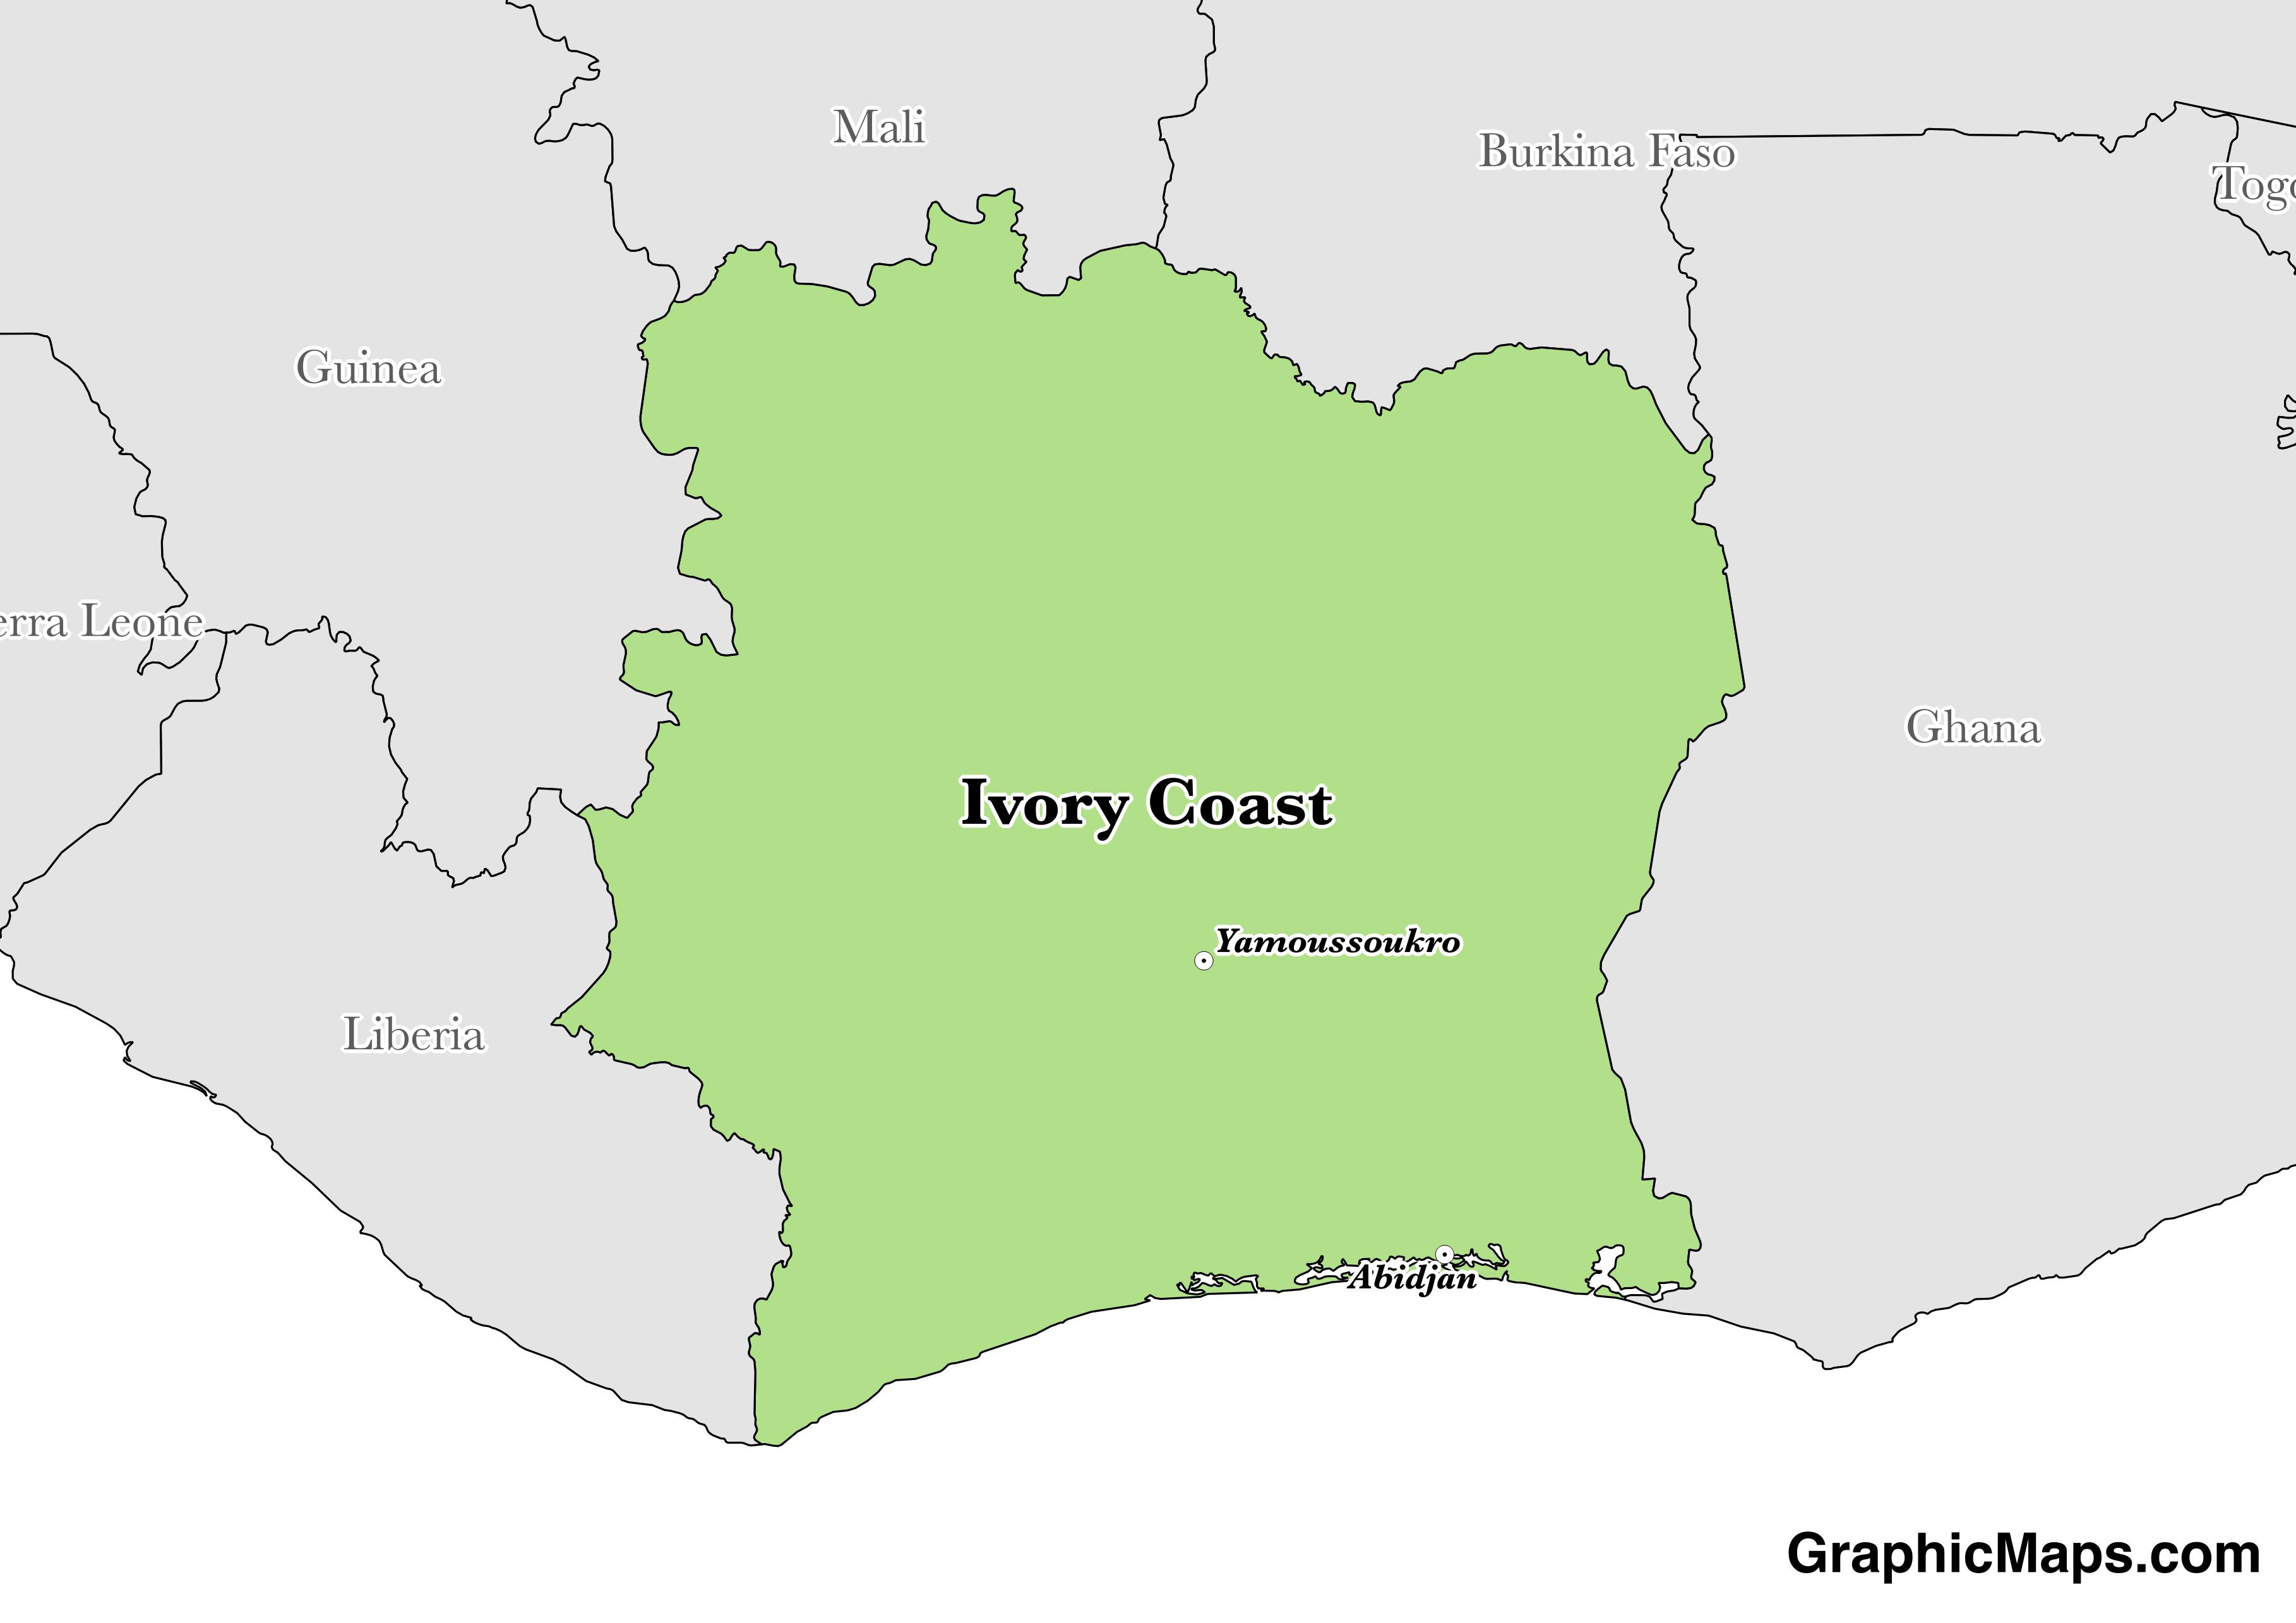 Map showing the location of Ivory Coast